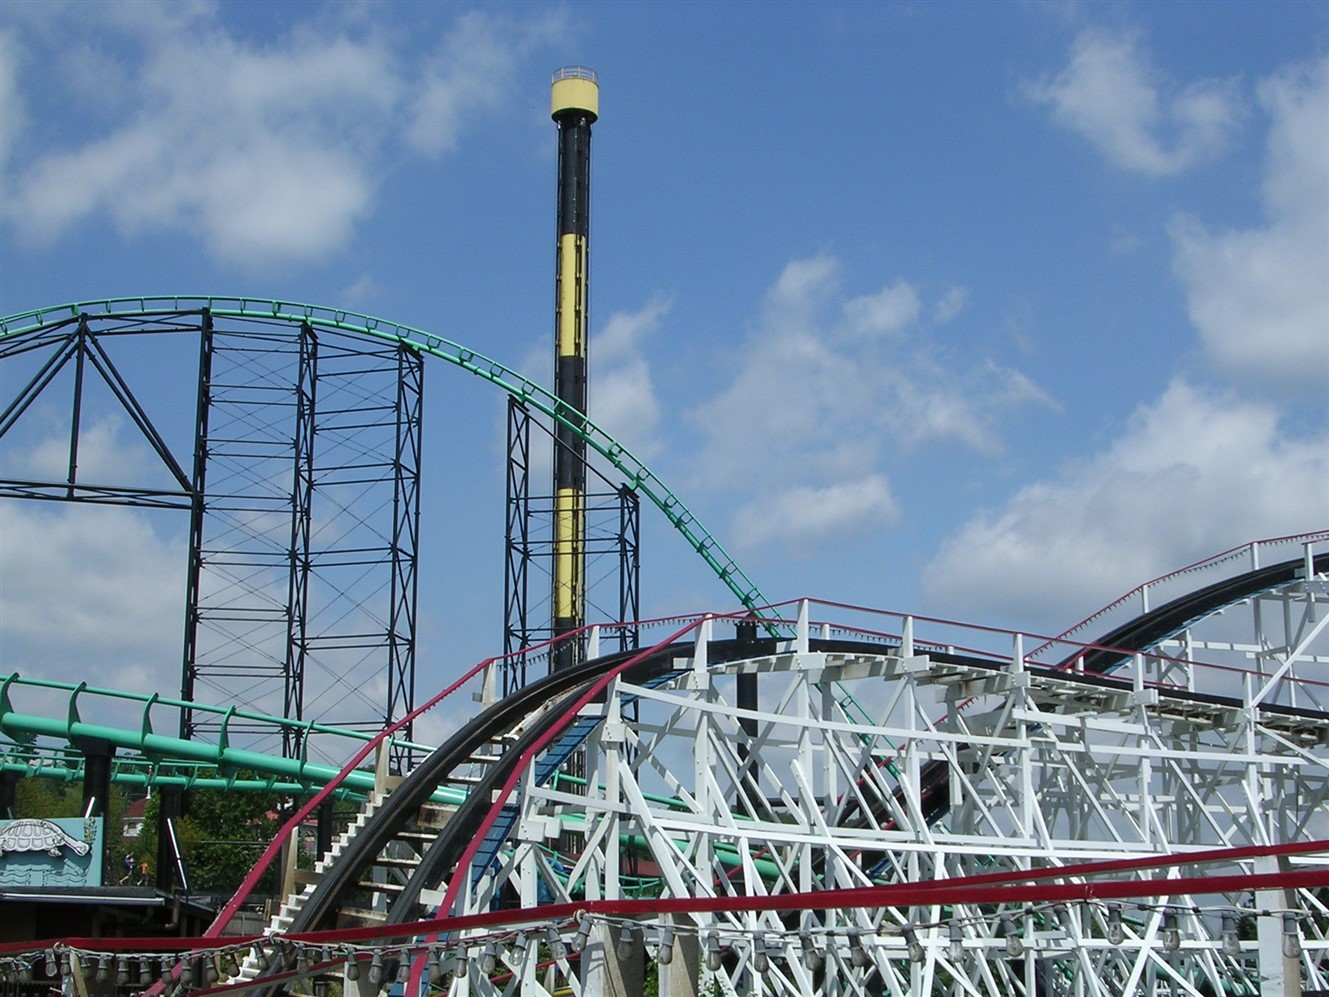 2004 08 Kennywood Park 8.jpg